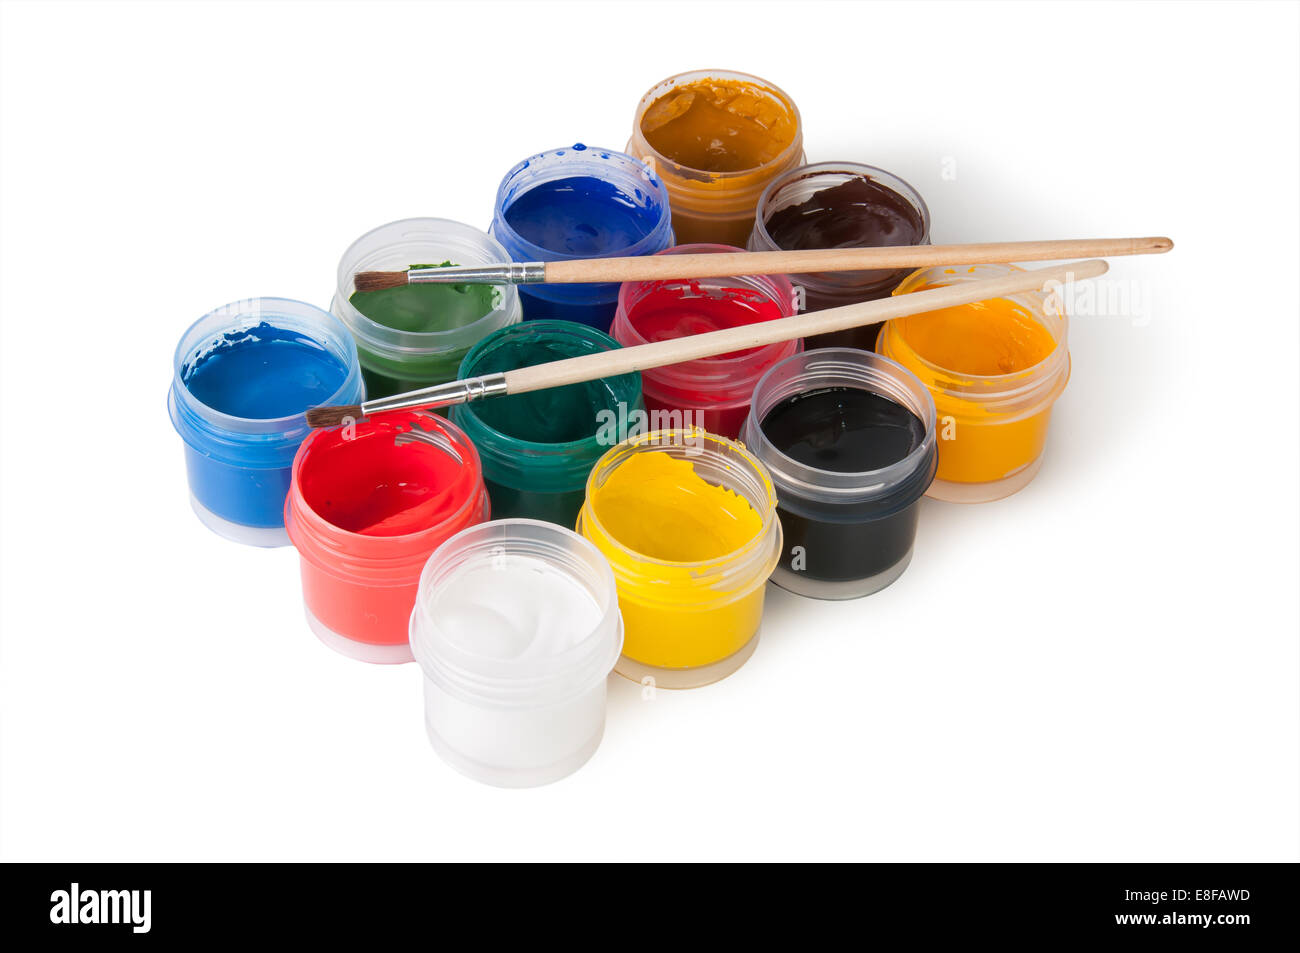 Jars With Gouache And Paint Brushes Isolated On White - Stock Image